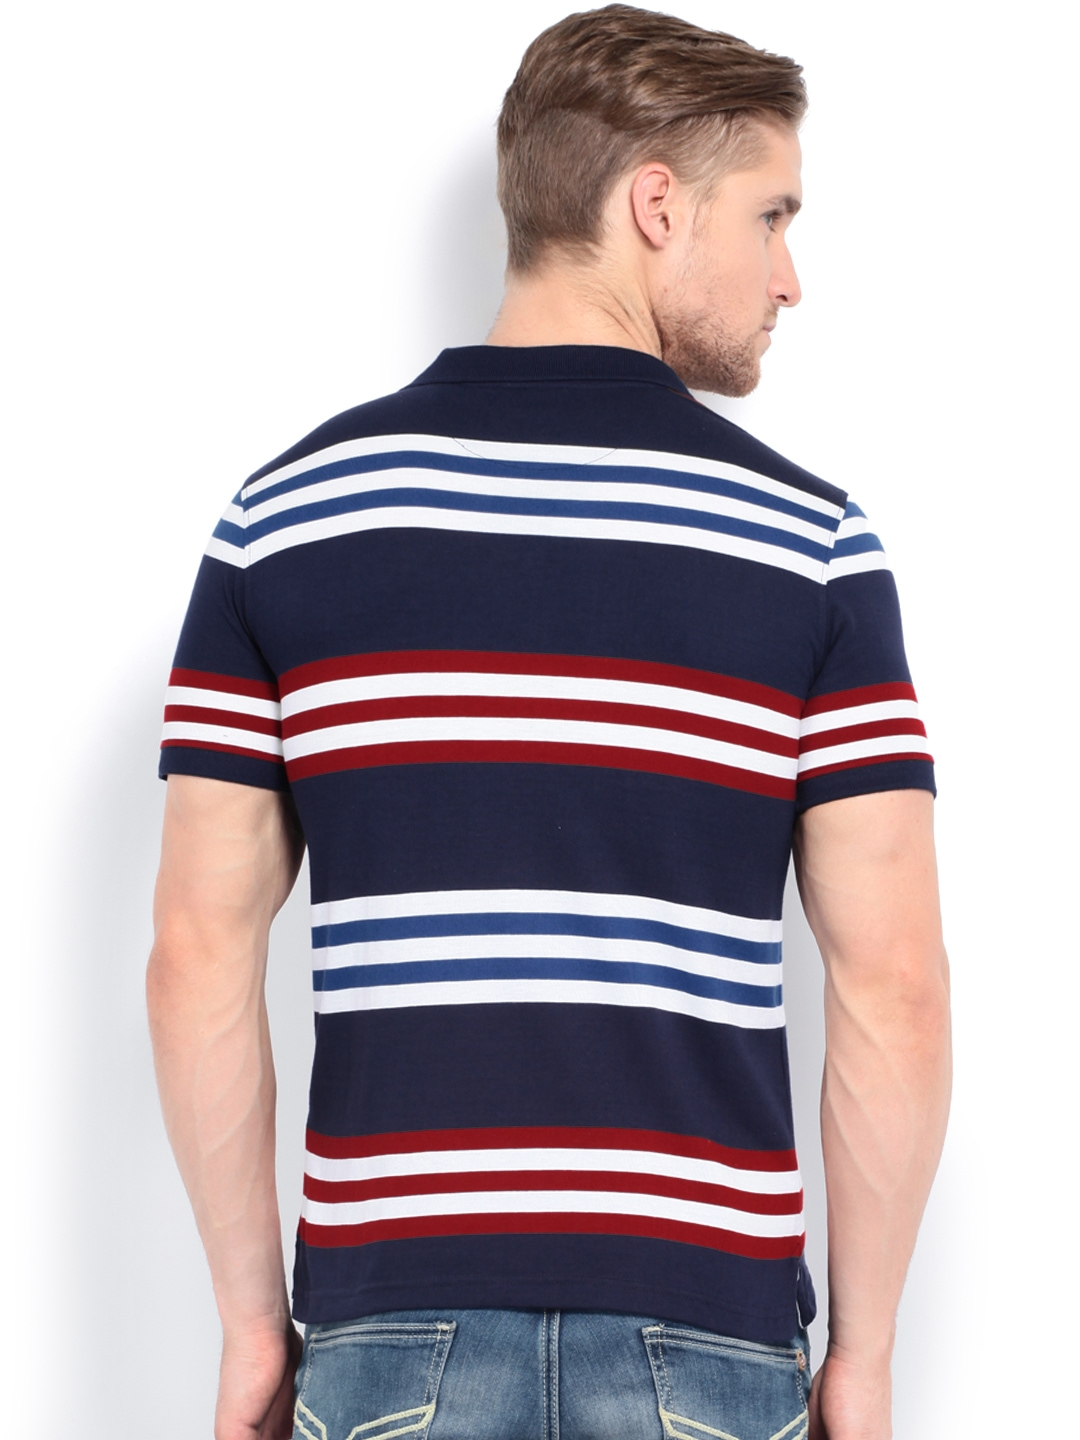 Myntra van heusen men blue red striped polo t shirt for Red white striped polo shirt